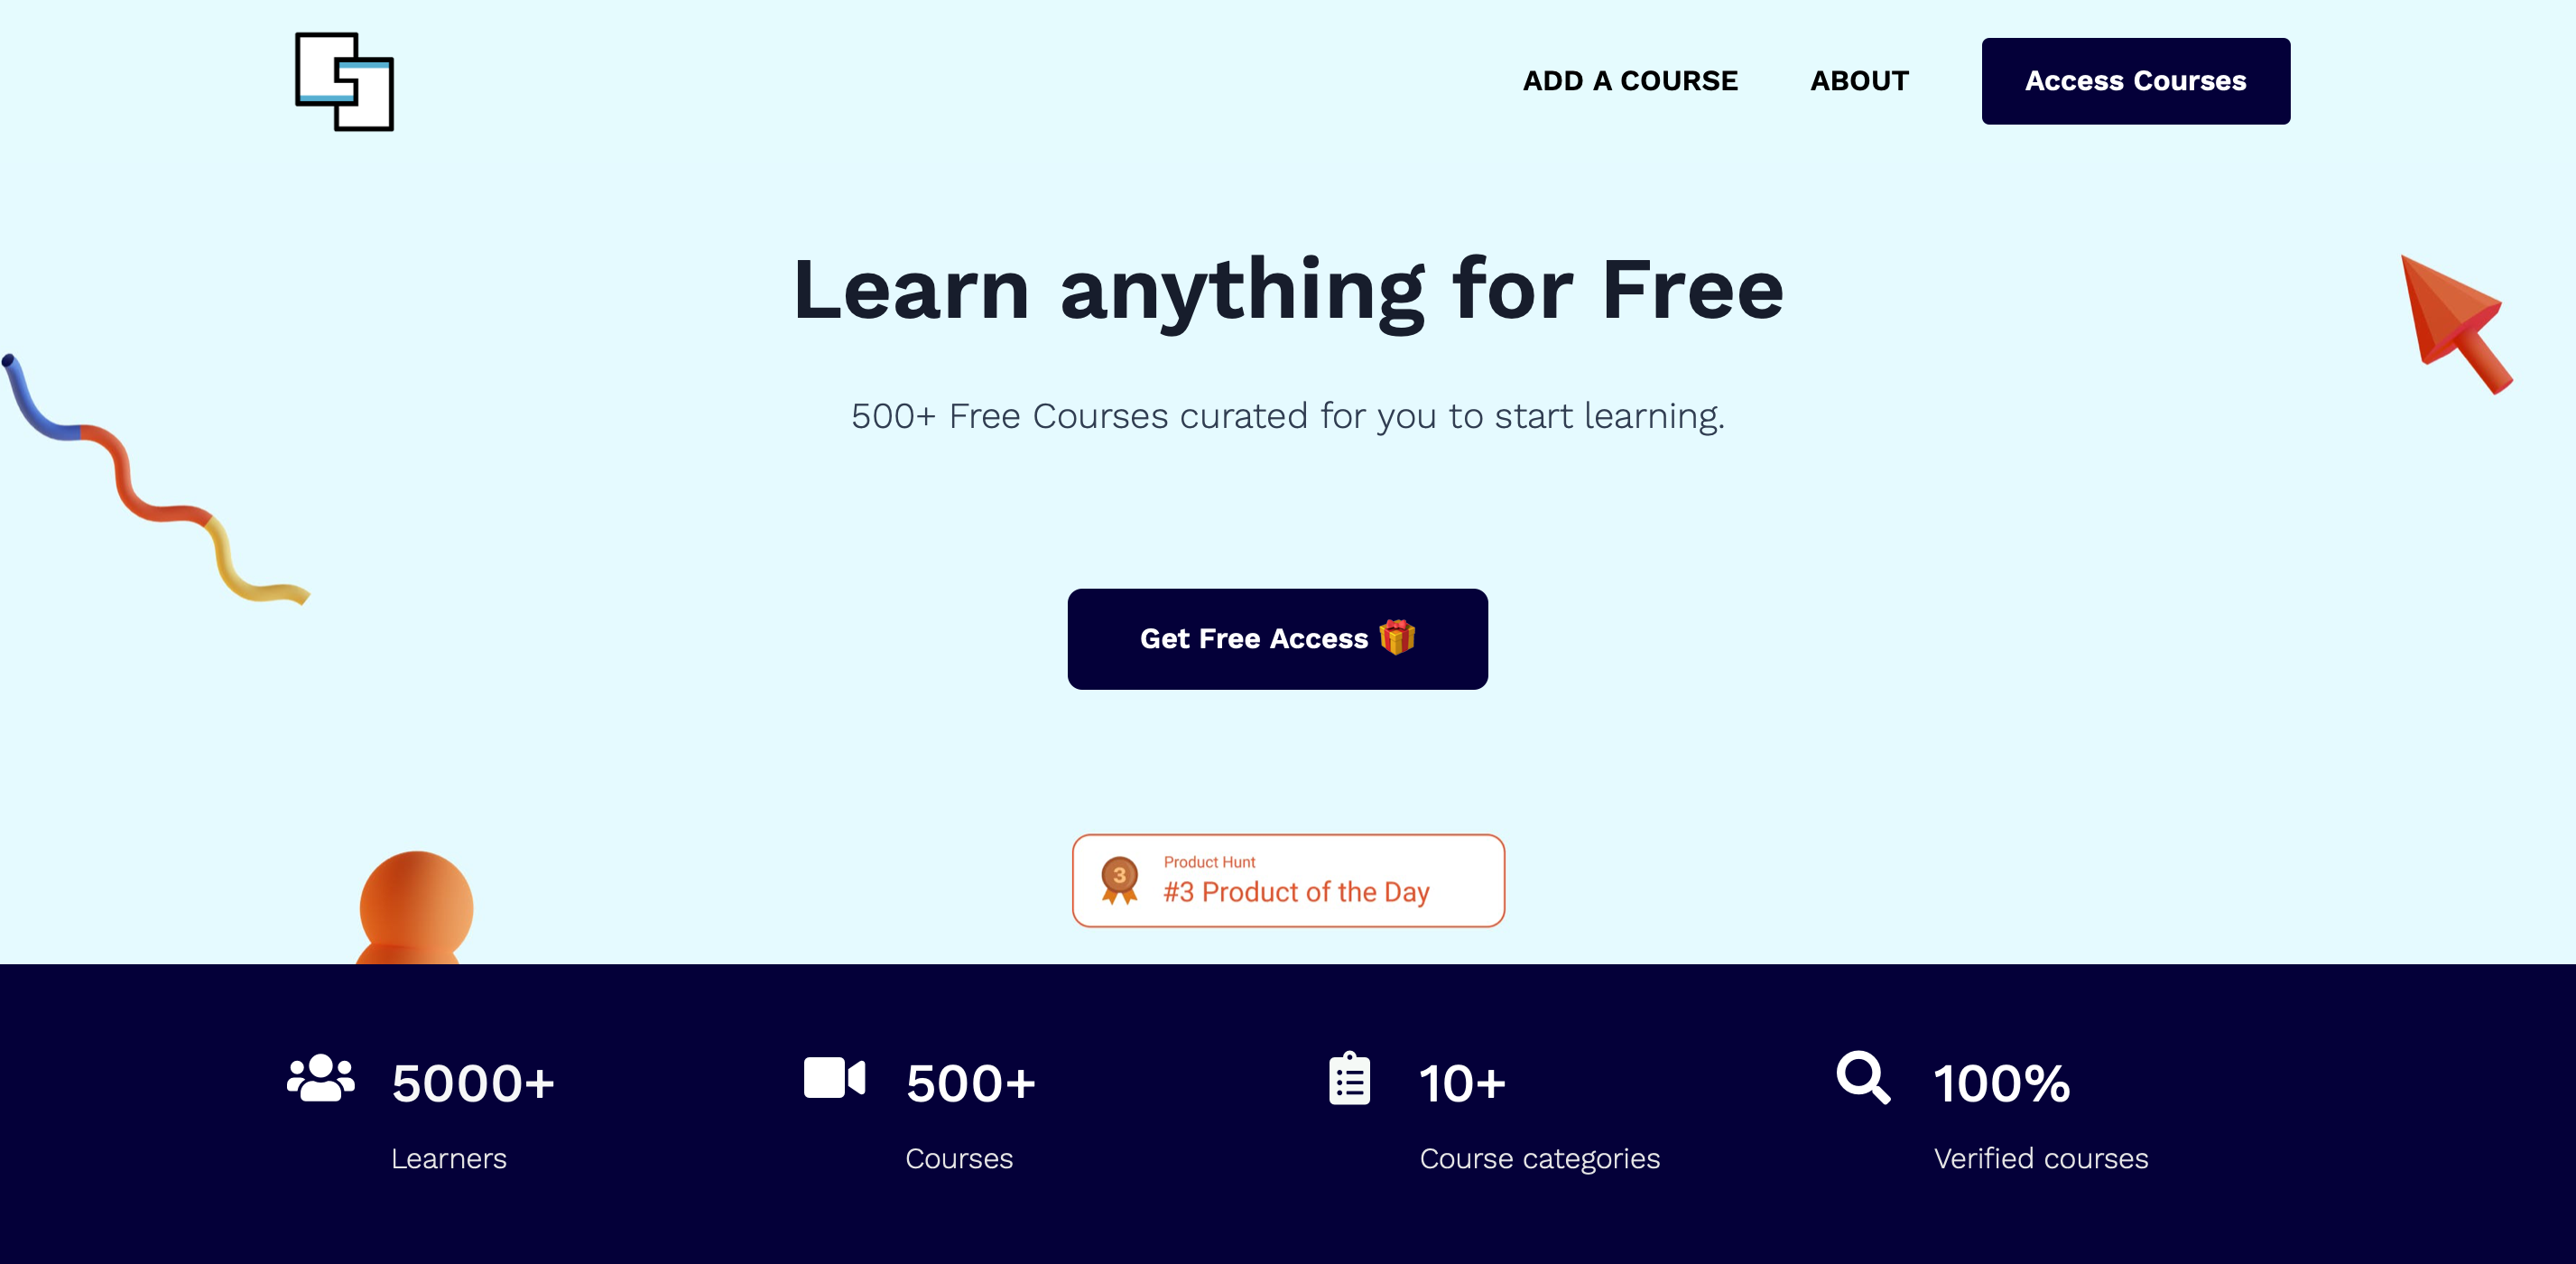 500+ free courses curated for you to start learning